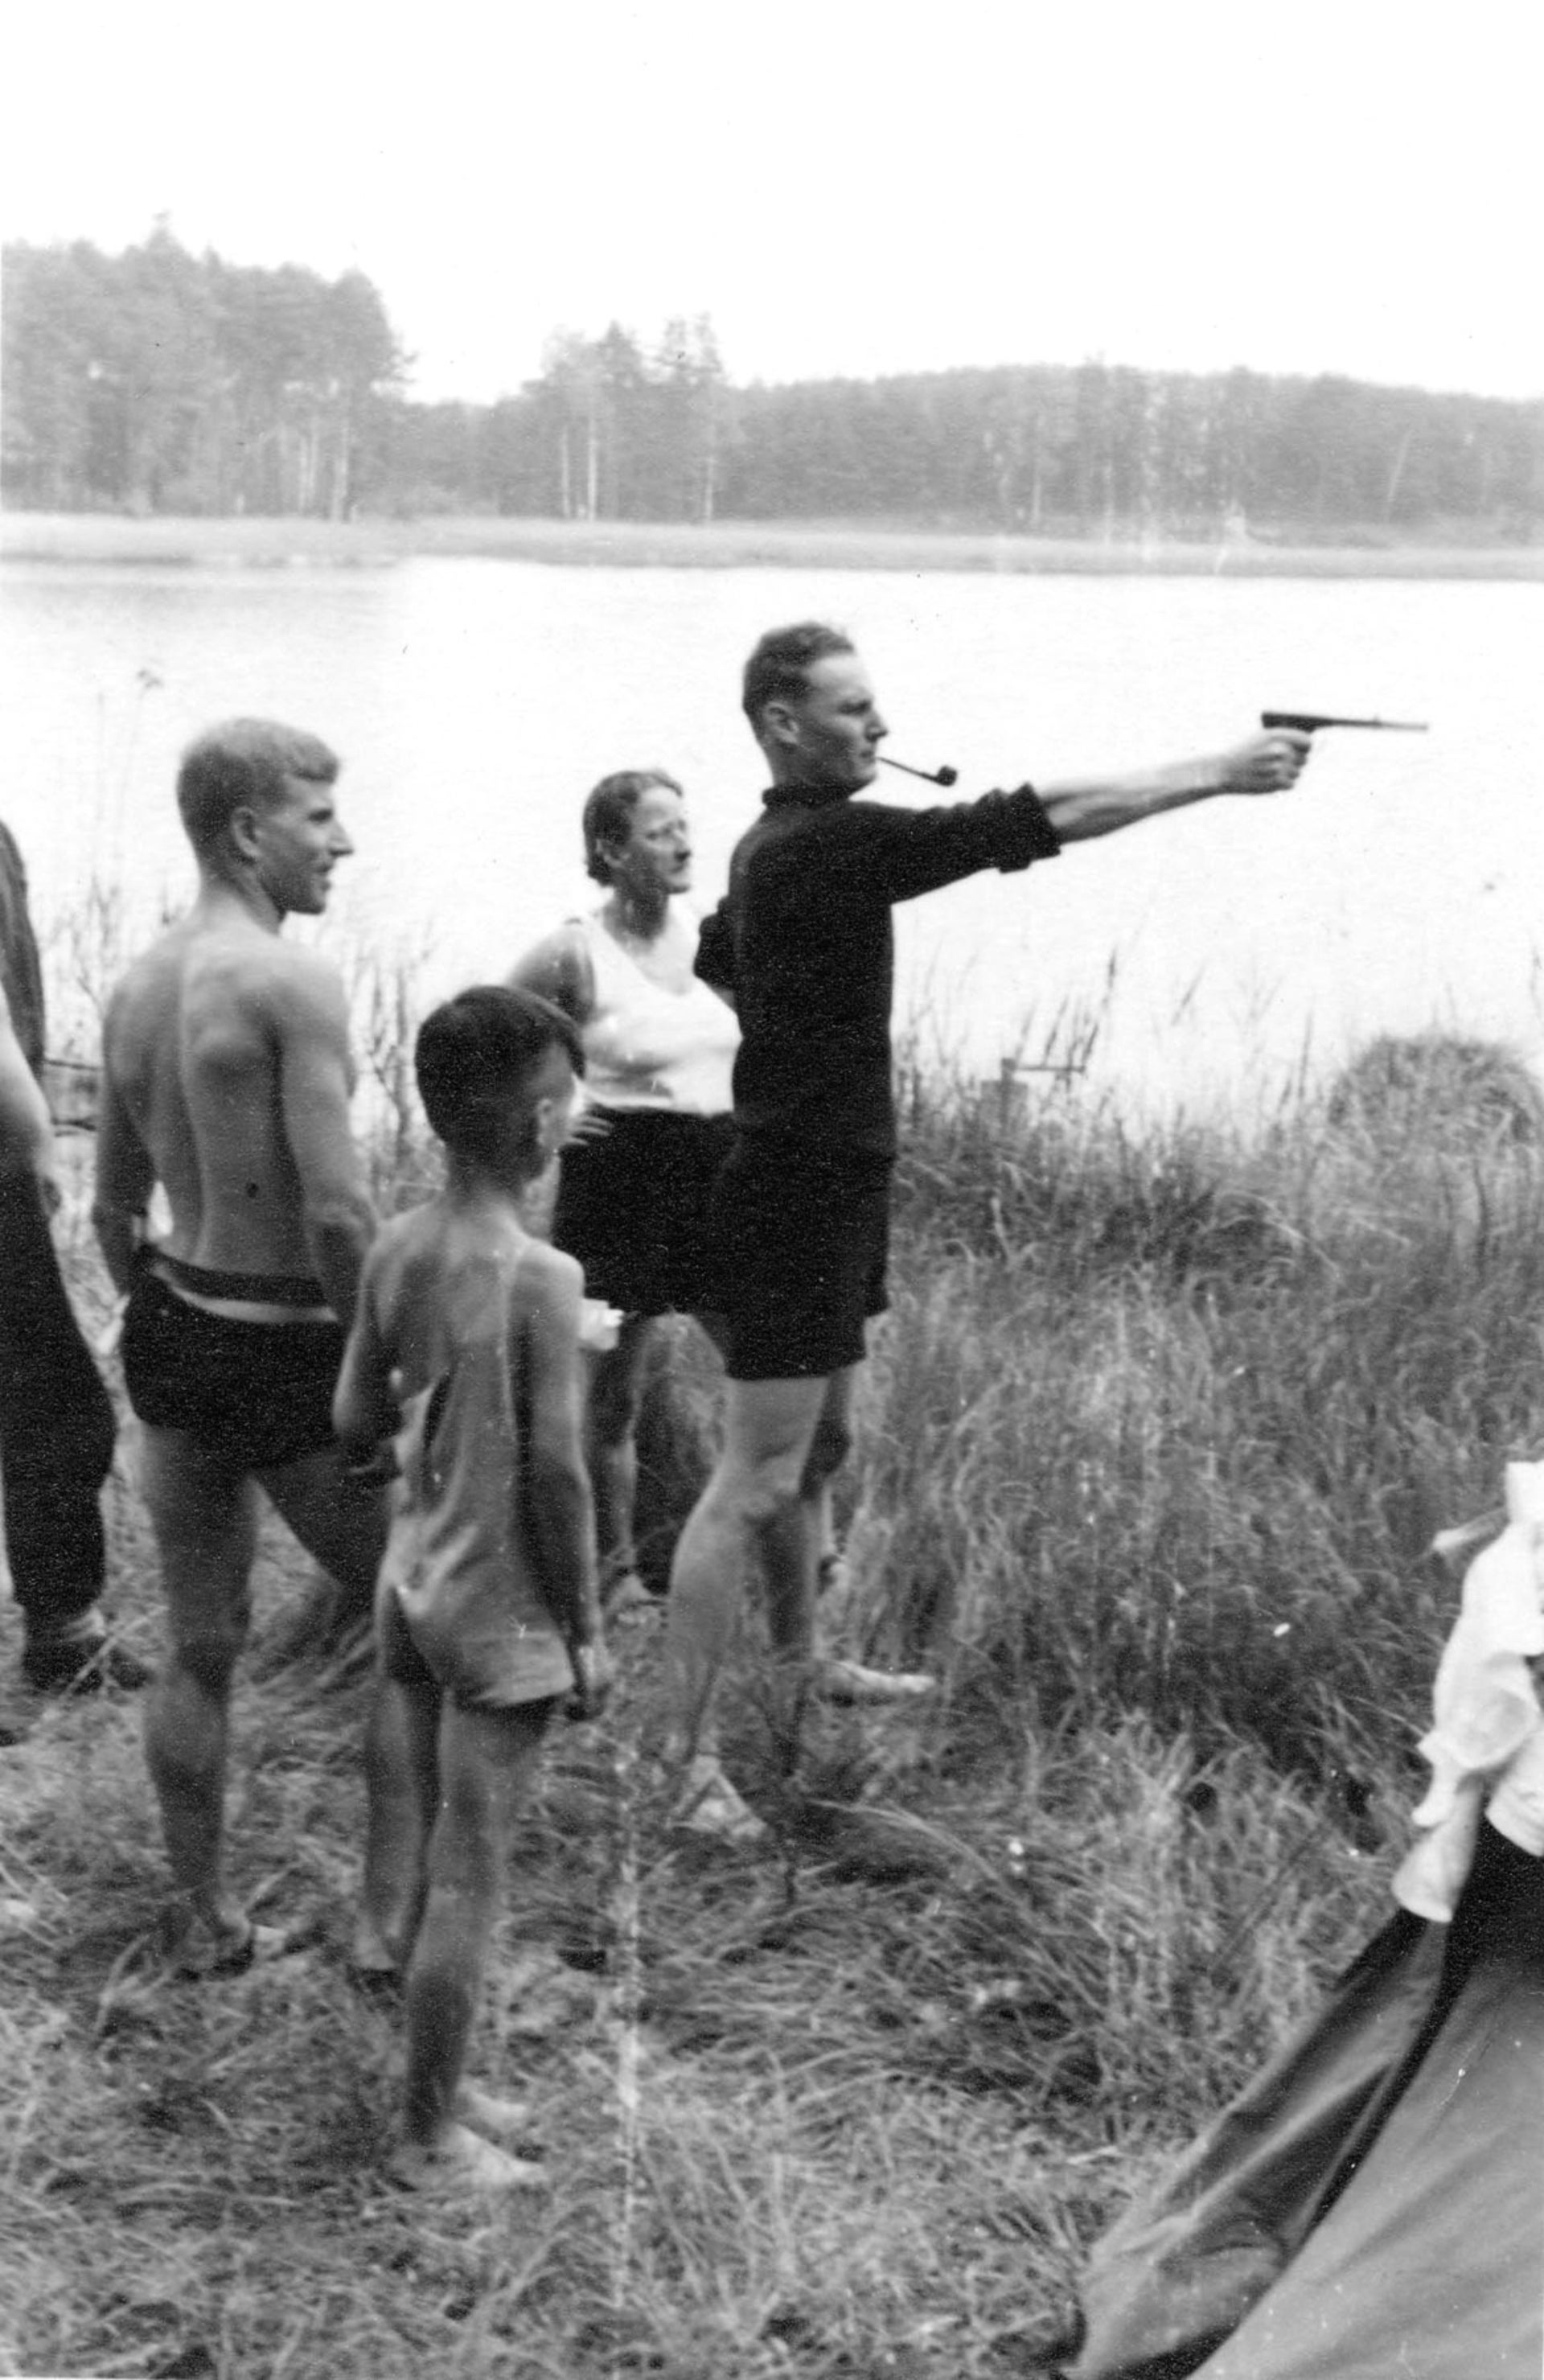 """Harro Schulze-Boysen (with pipe and revolver) taking aim. With him are fellow """"group"""" members Dr. Elfriede Paul and Kurt Schumacher."""